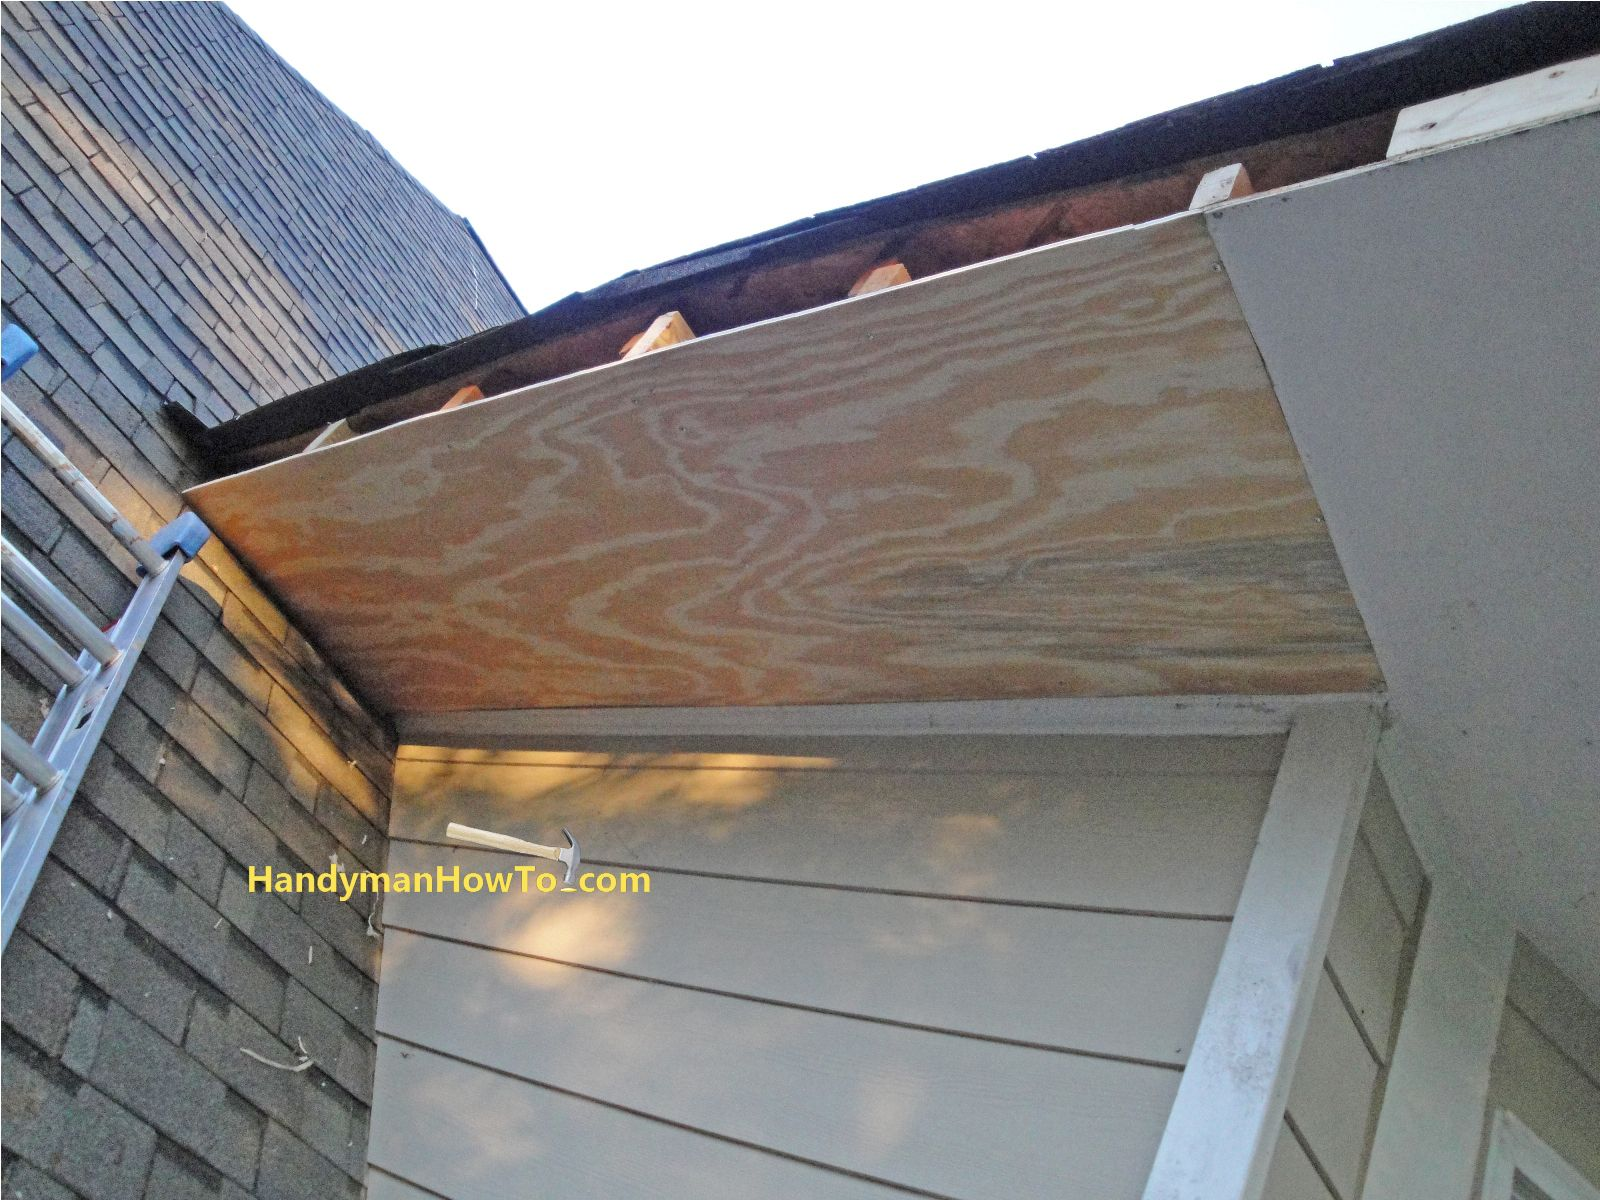 How to paint fascia boards - How To Repair Rotted Soffit And Fascia Photo Tutorial Install A New Plywood Soffit And Pvc Fascia Board